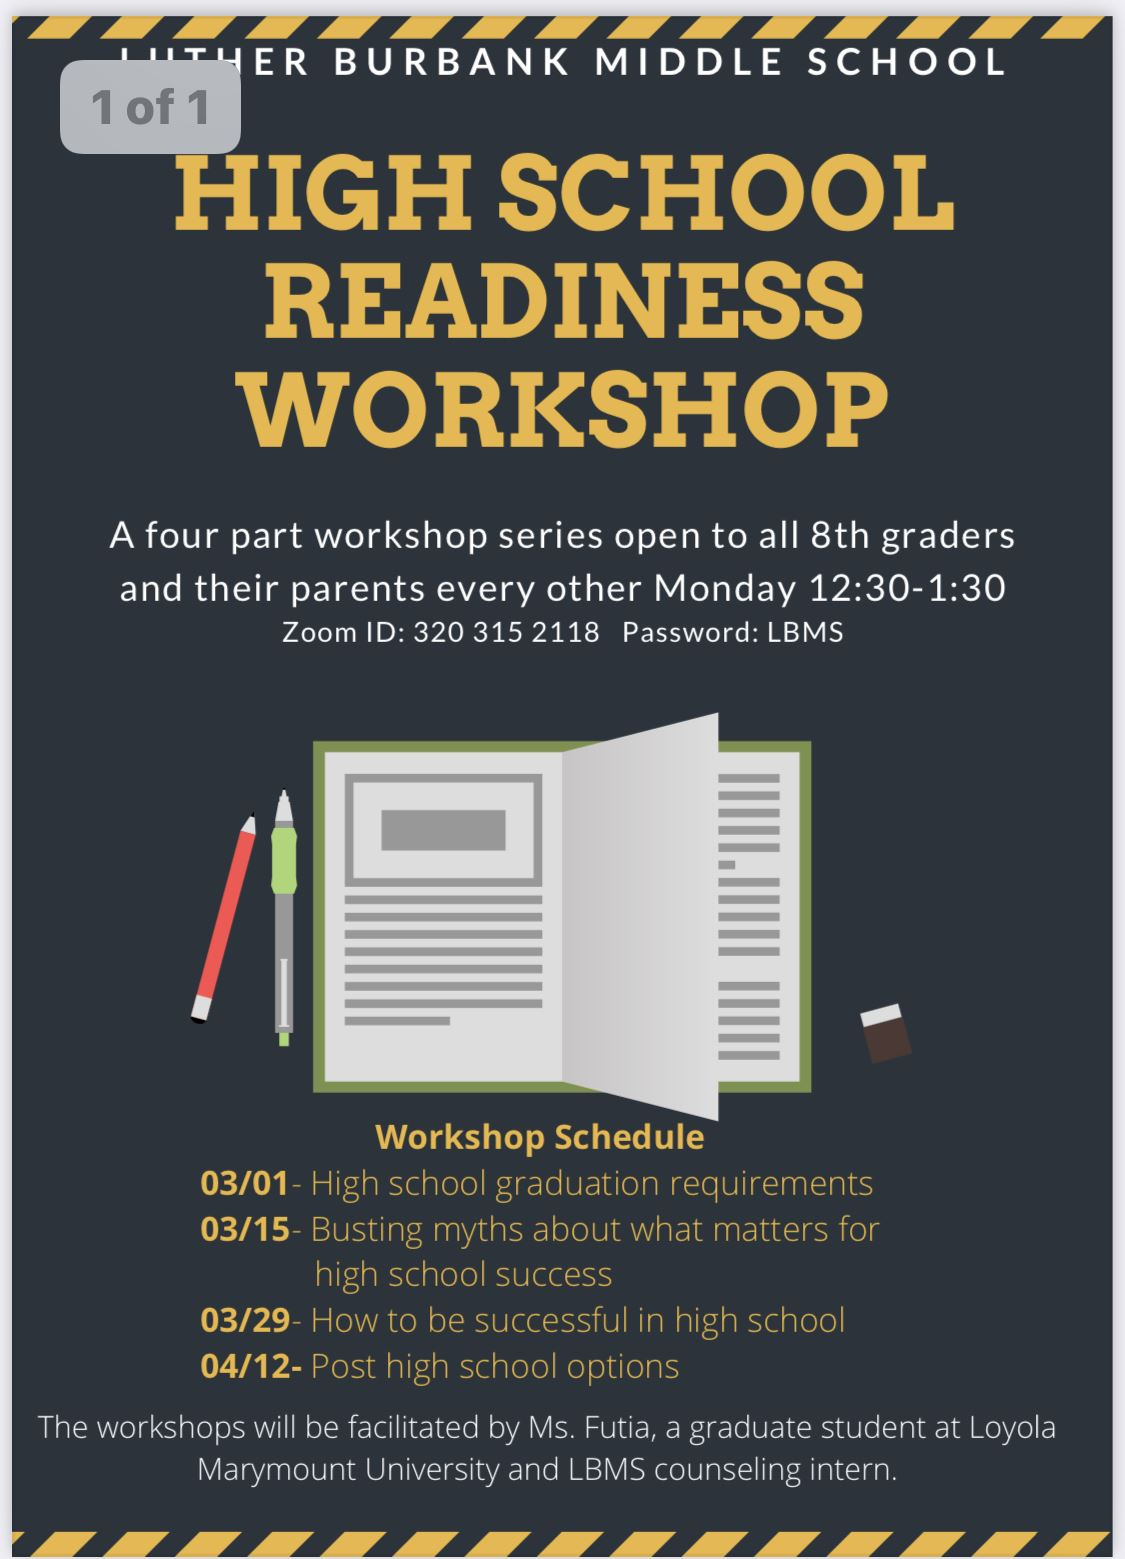 BUSD High School Readiness Workshops